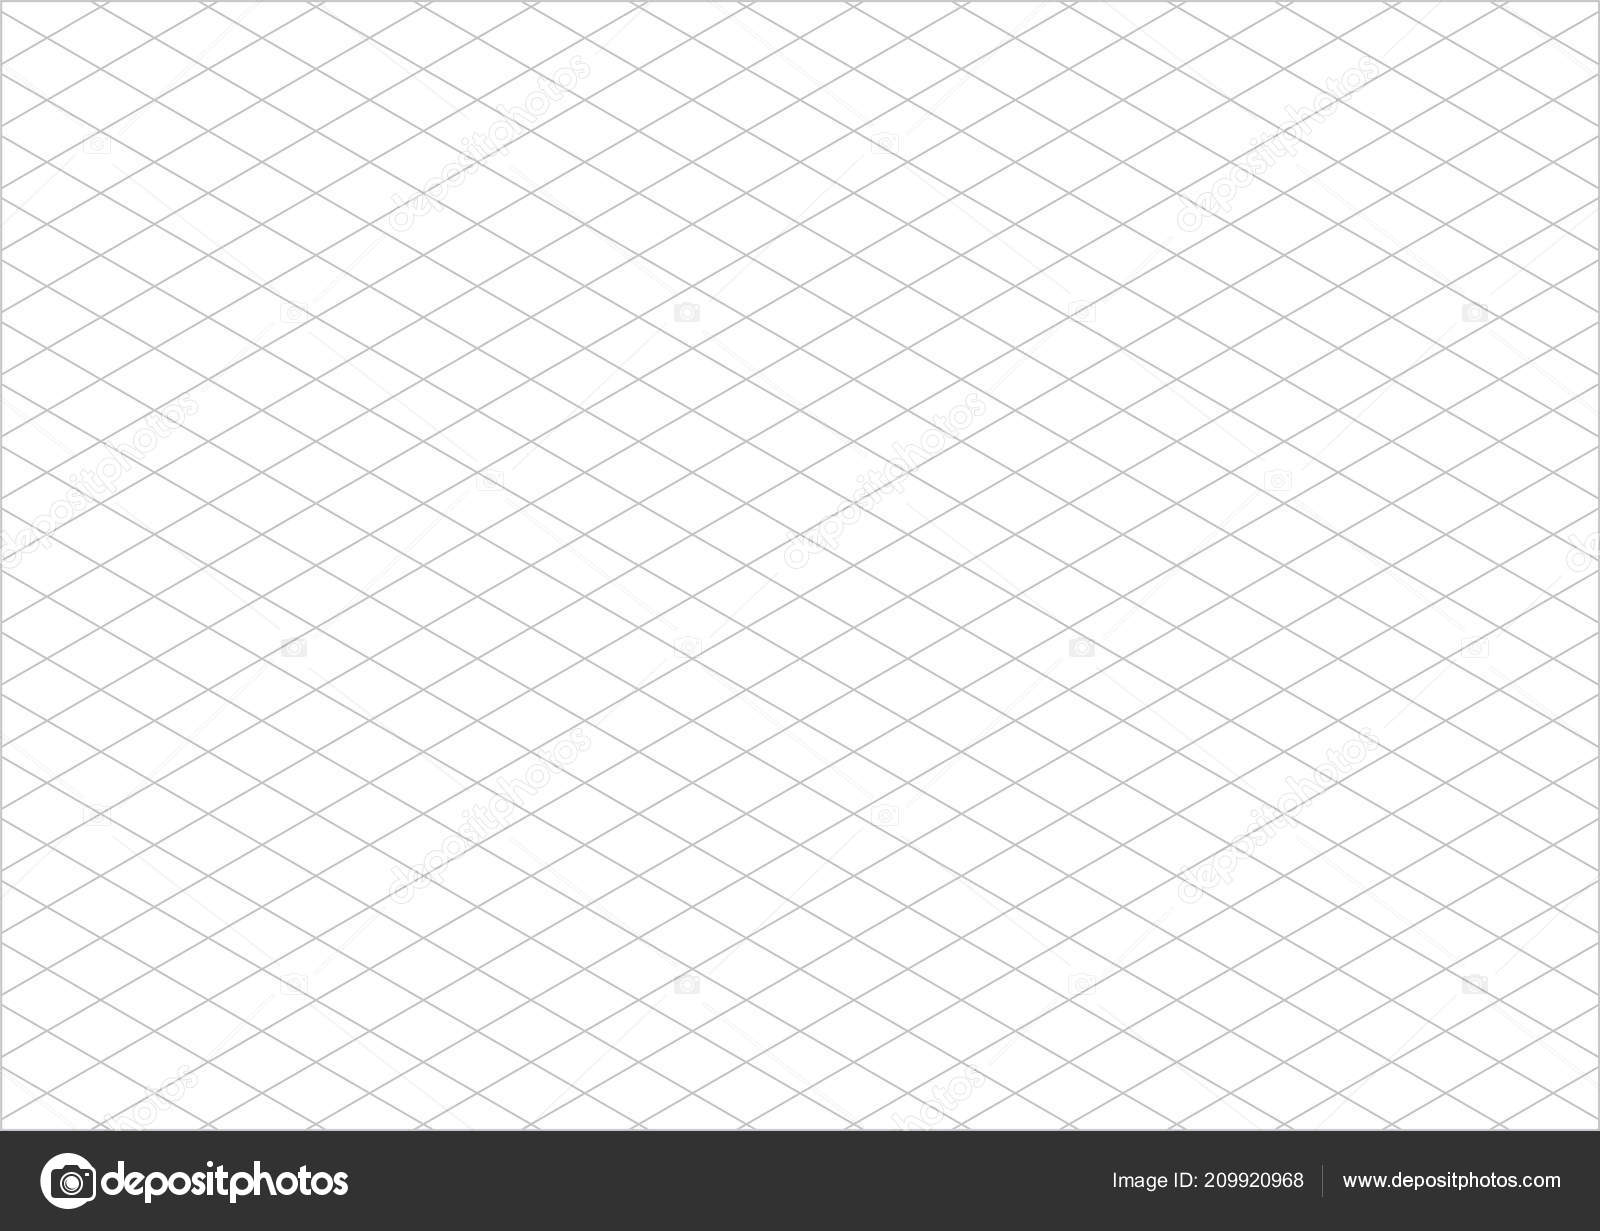 Isometric Grid Paper Landscape Vector — Stock Vector ...